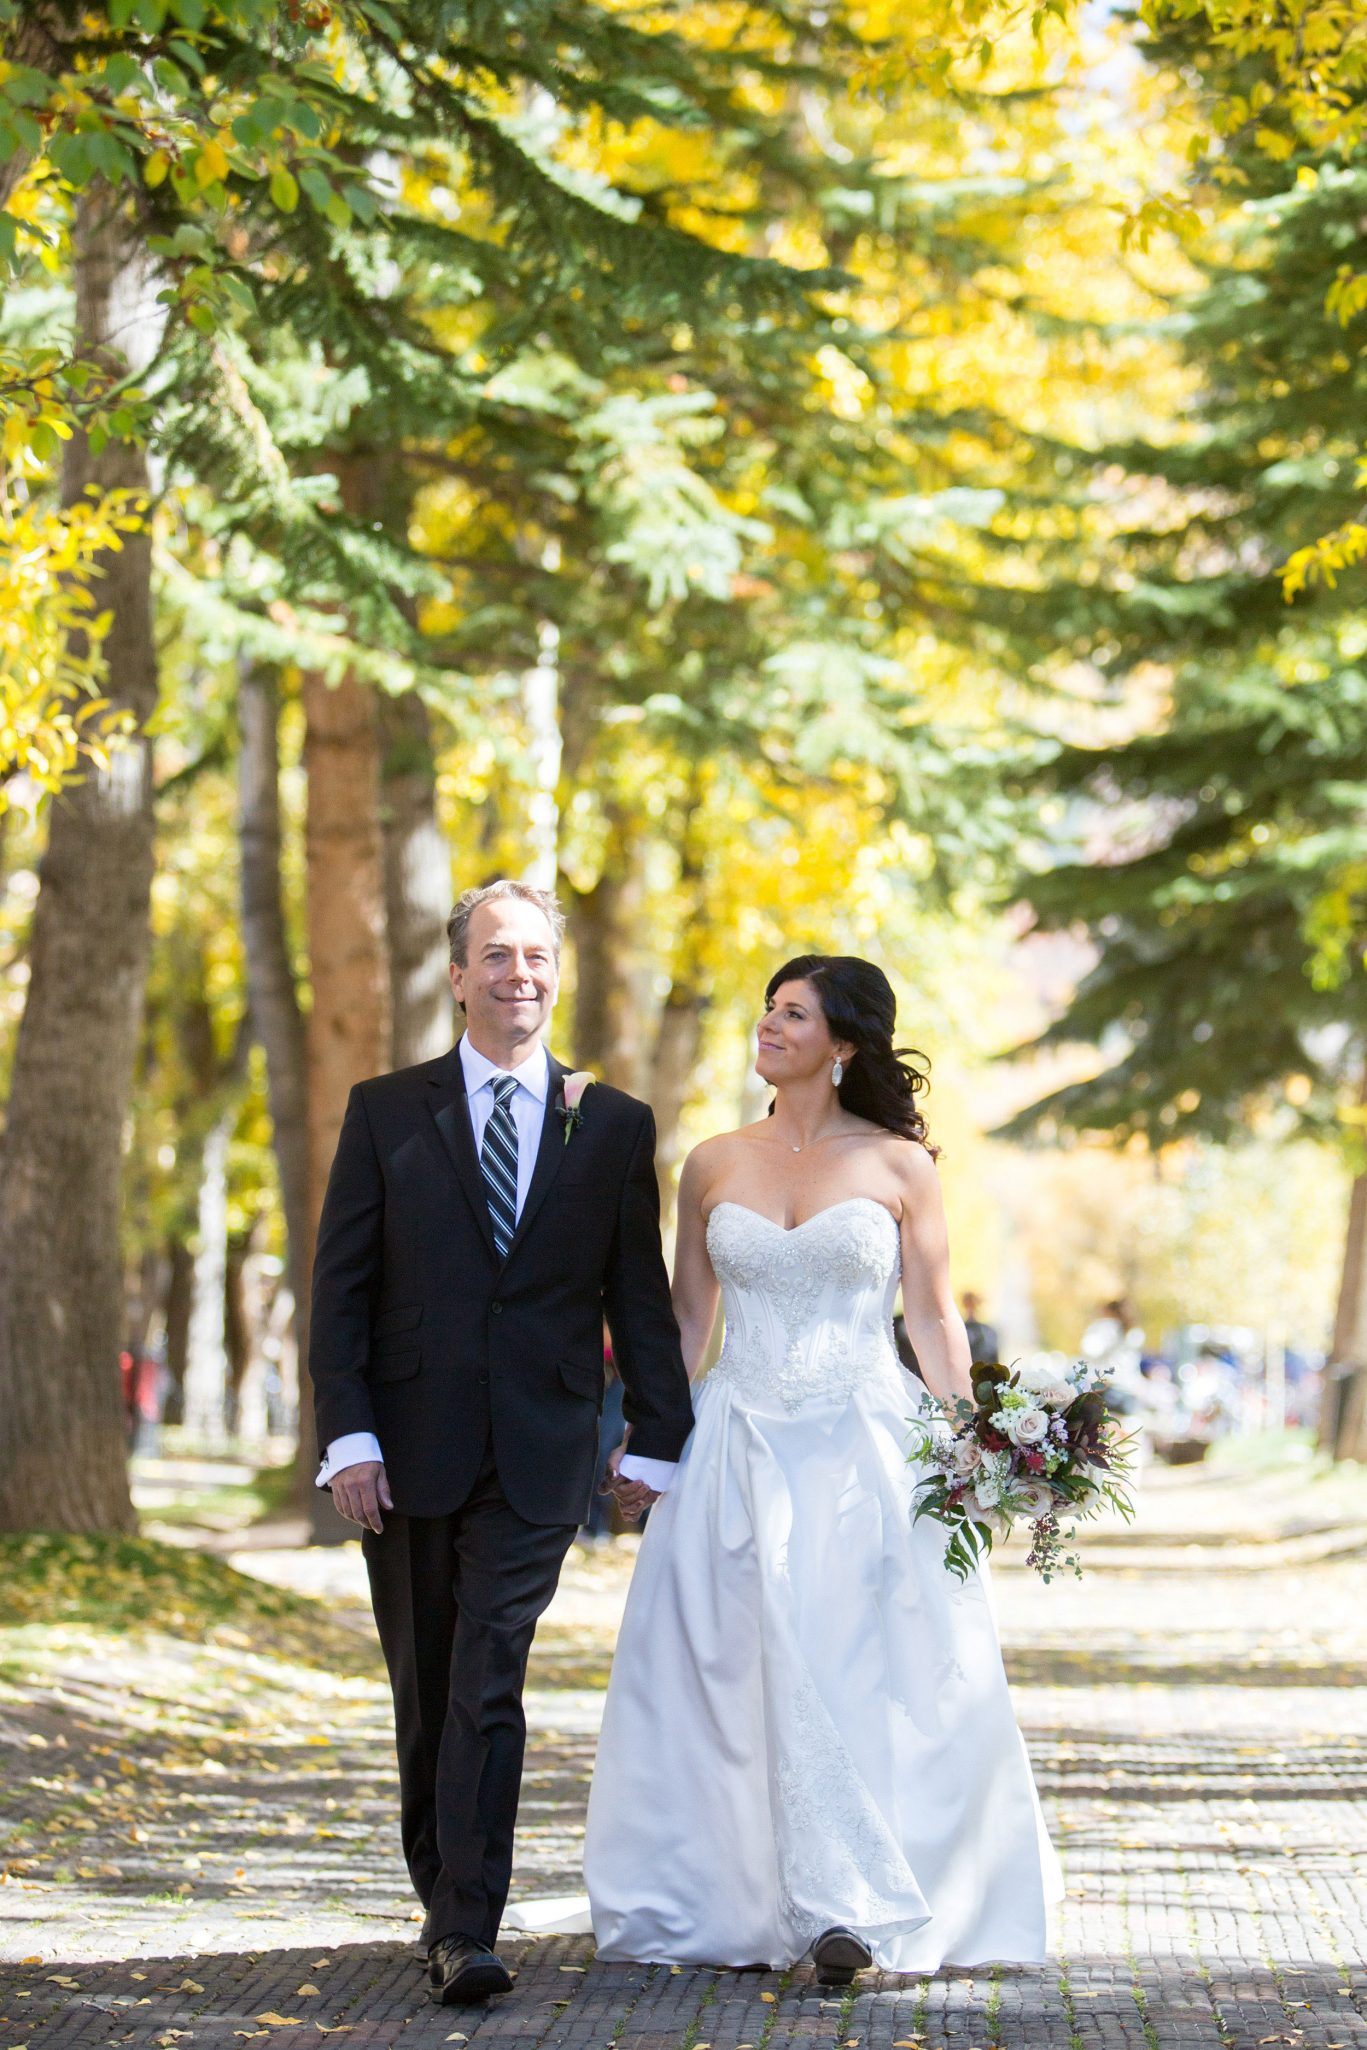 A Fall Aspen Wedding at T Lazy 7 Ranch, Colorado